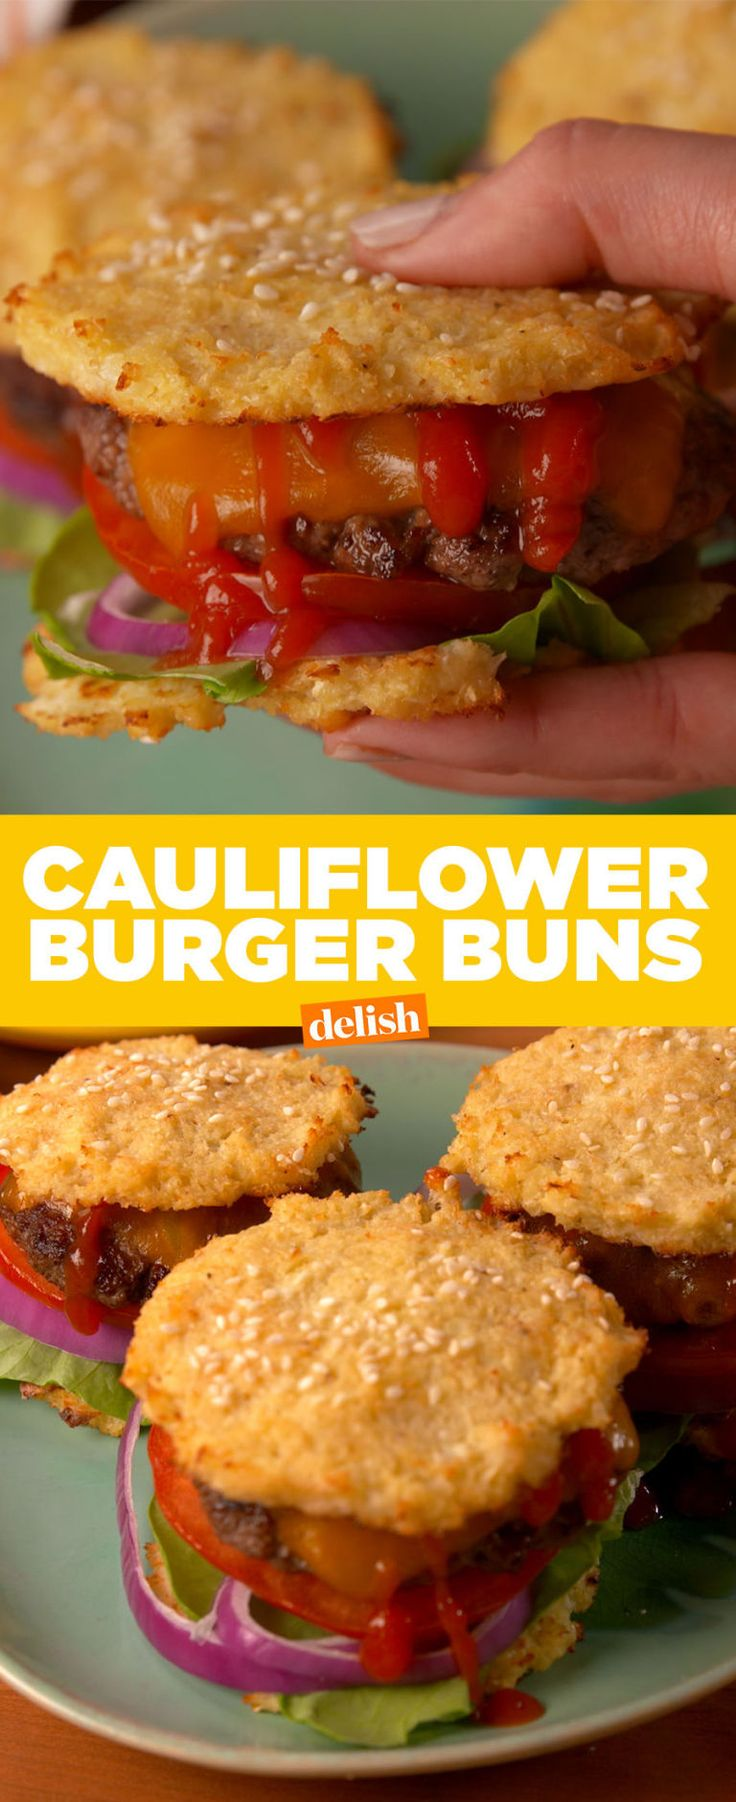 You'll Want This Low-Carb Bun On Every Burger You Eat This Summer